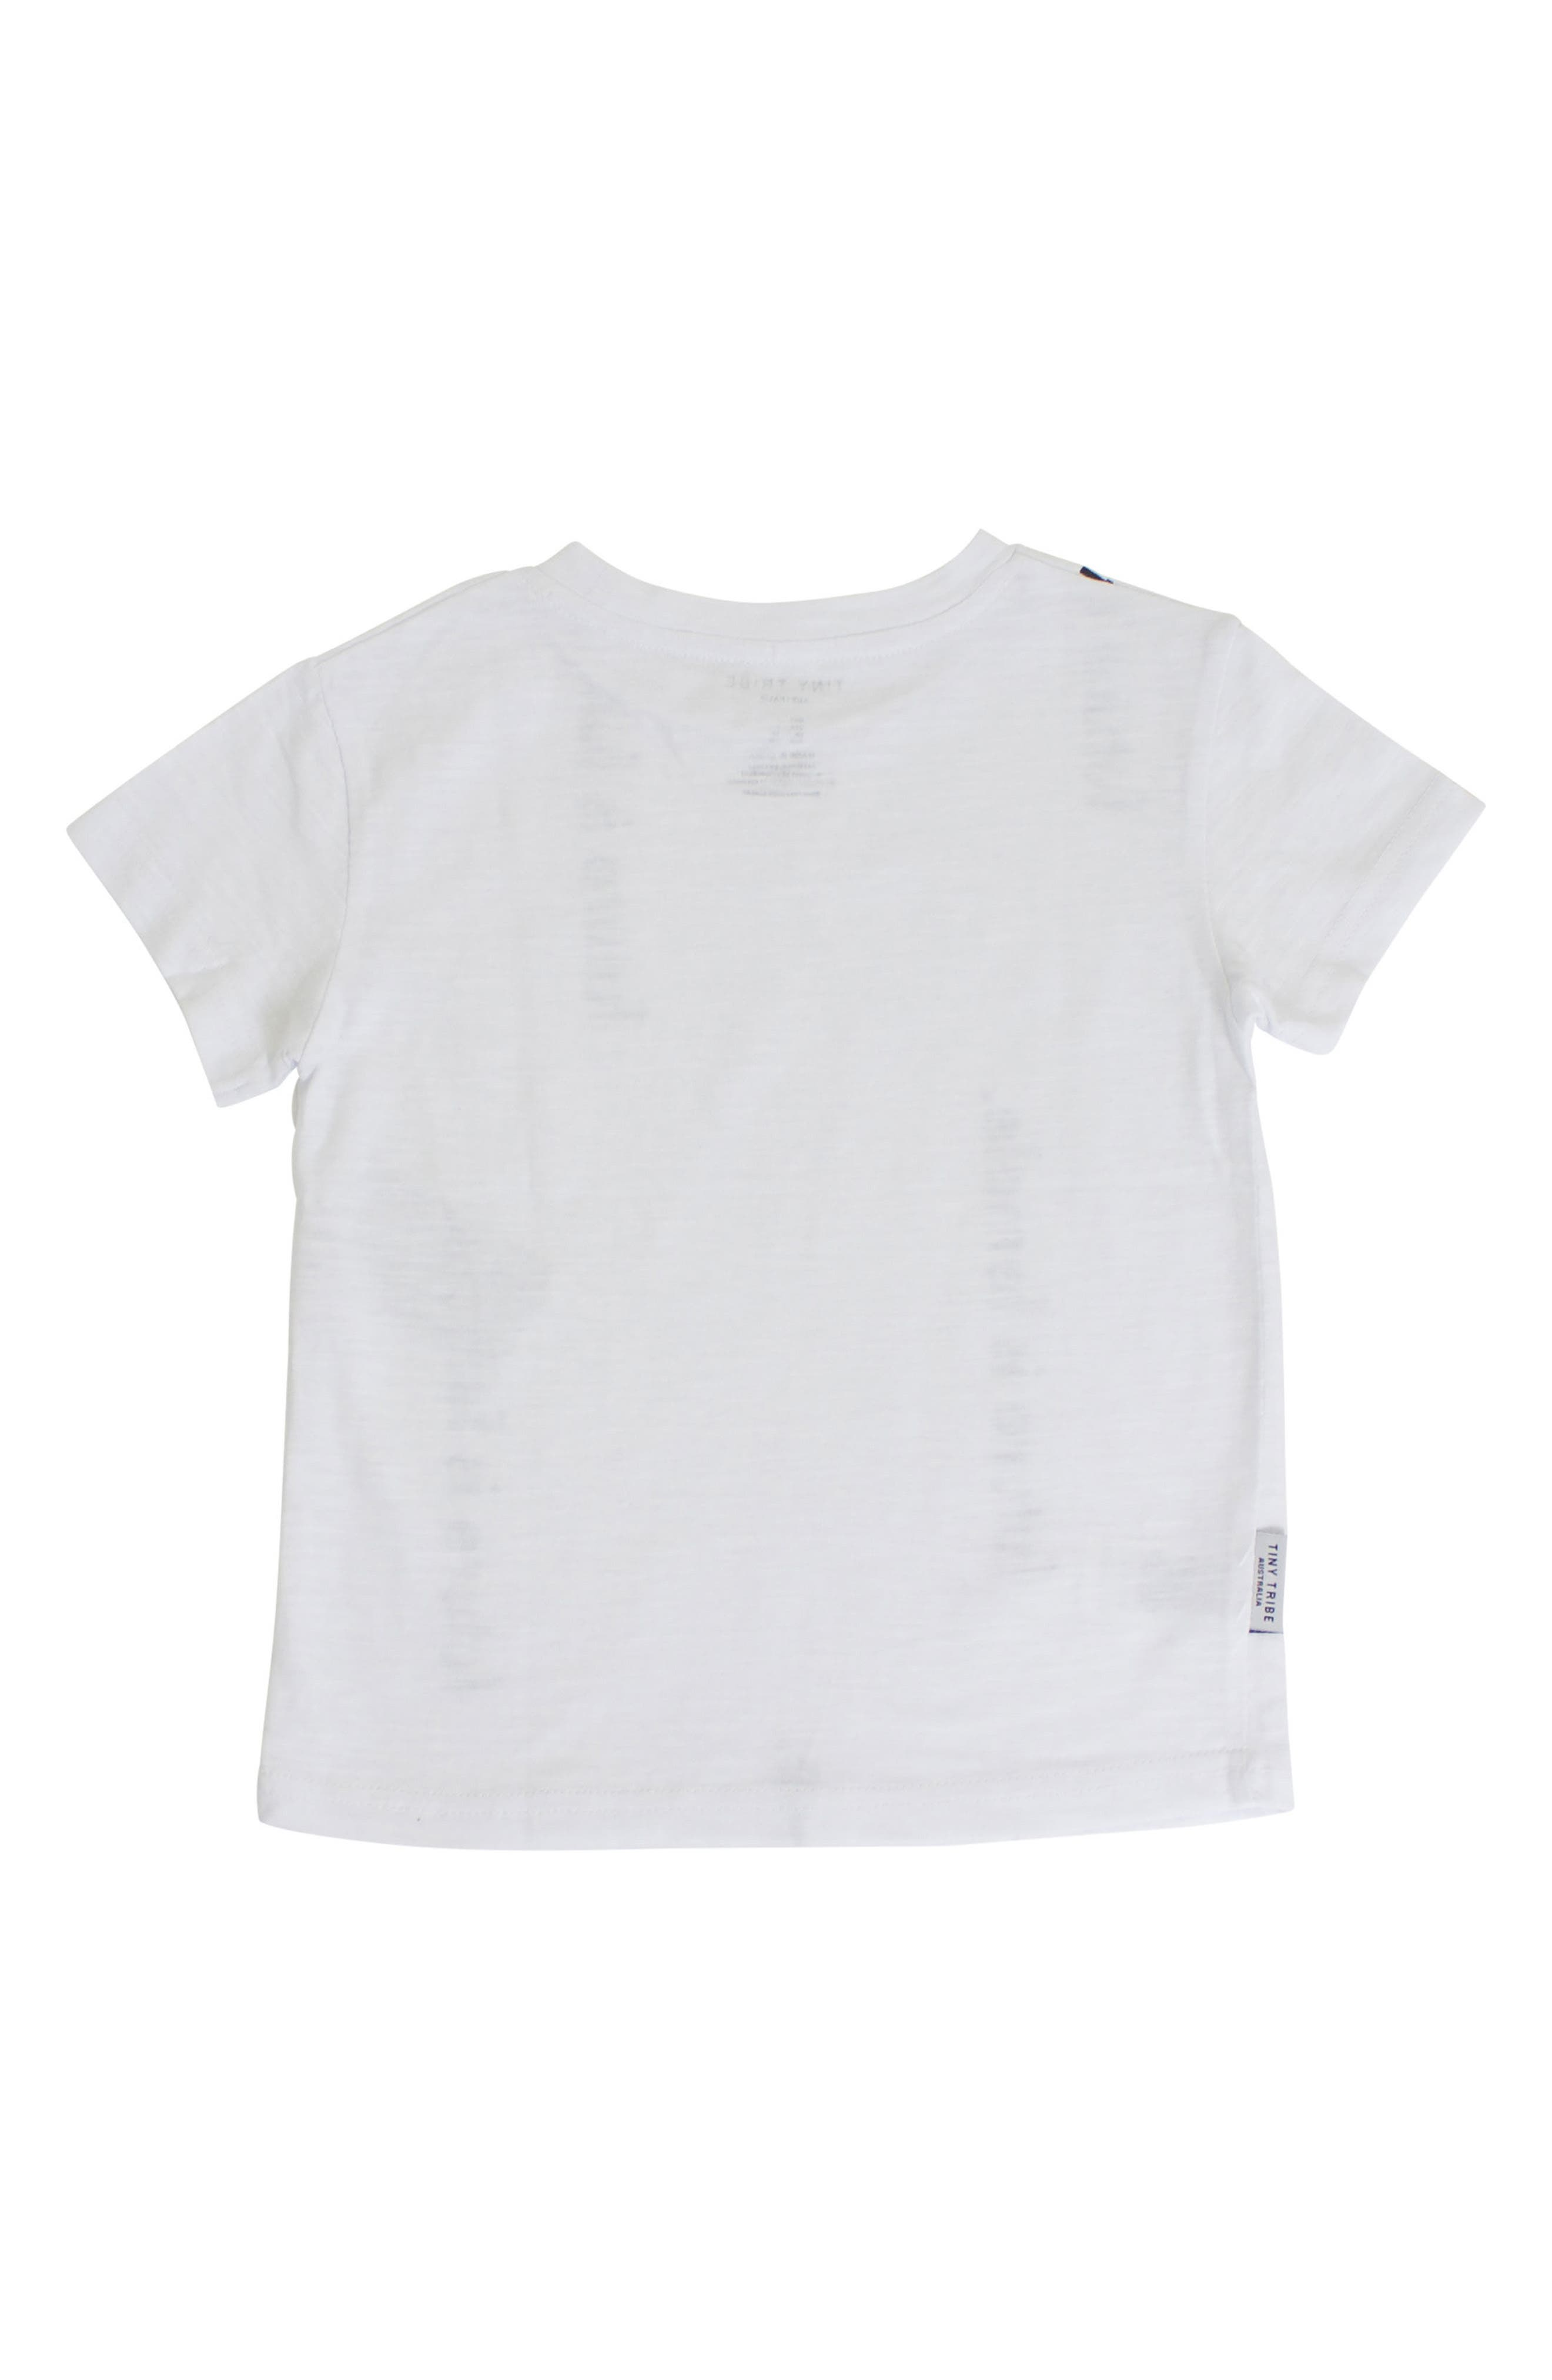 Future is Female Graphic Tee,                             Alternate thumbnail 2, color,                             White